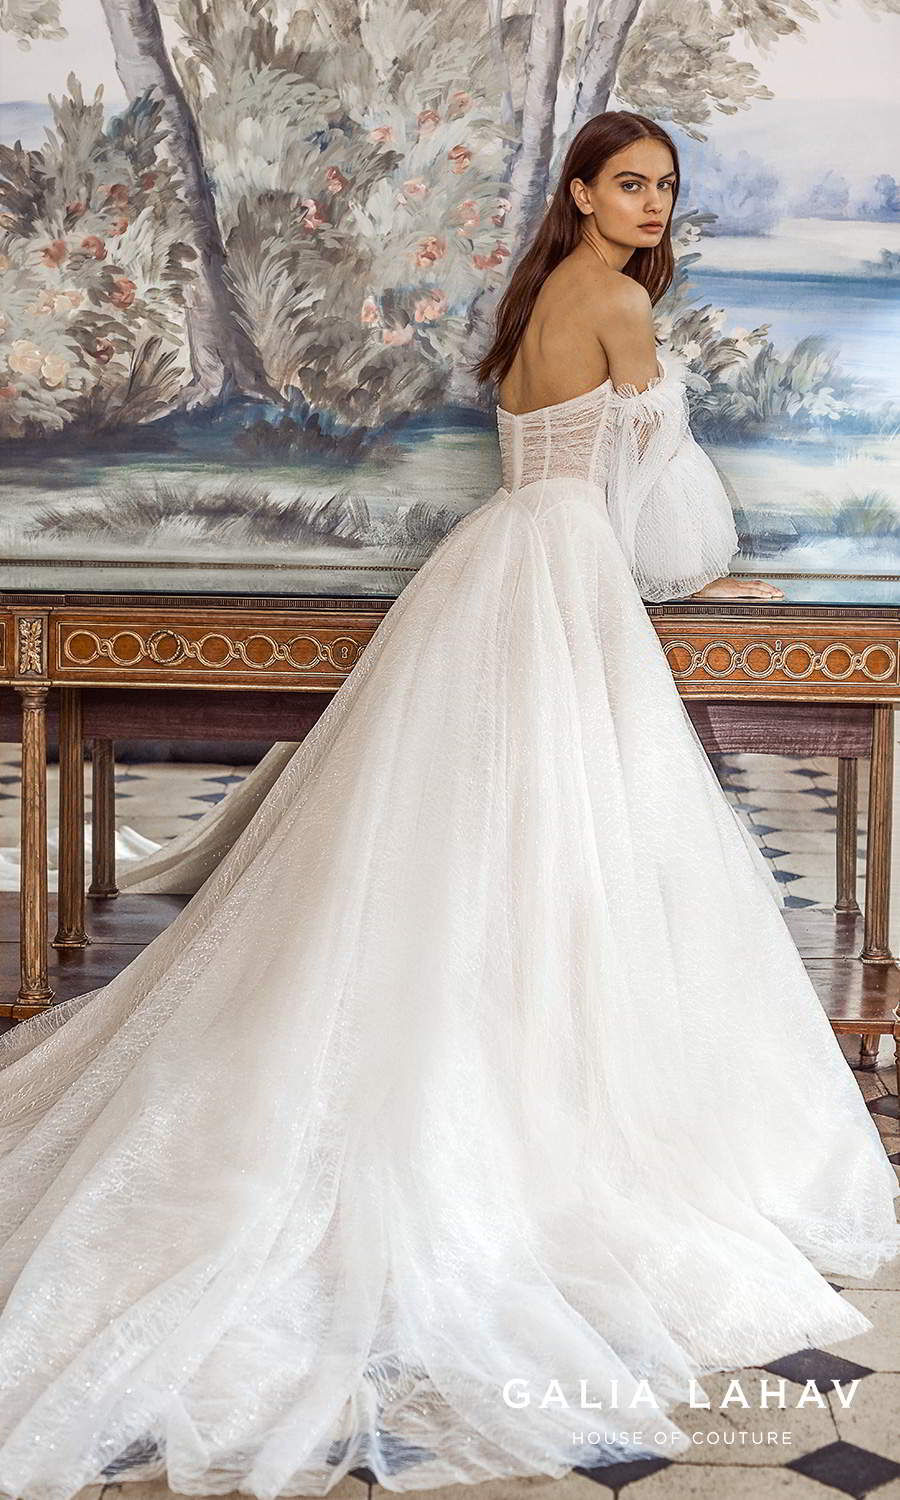 galia lahav fall 2021 bridal couture off shoulder bishop sleeves semi sweetheart neckline ruched bodice a line ball gown wedding dress chapel train (seraphina) sv